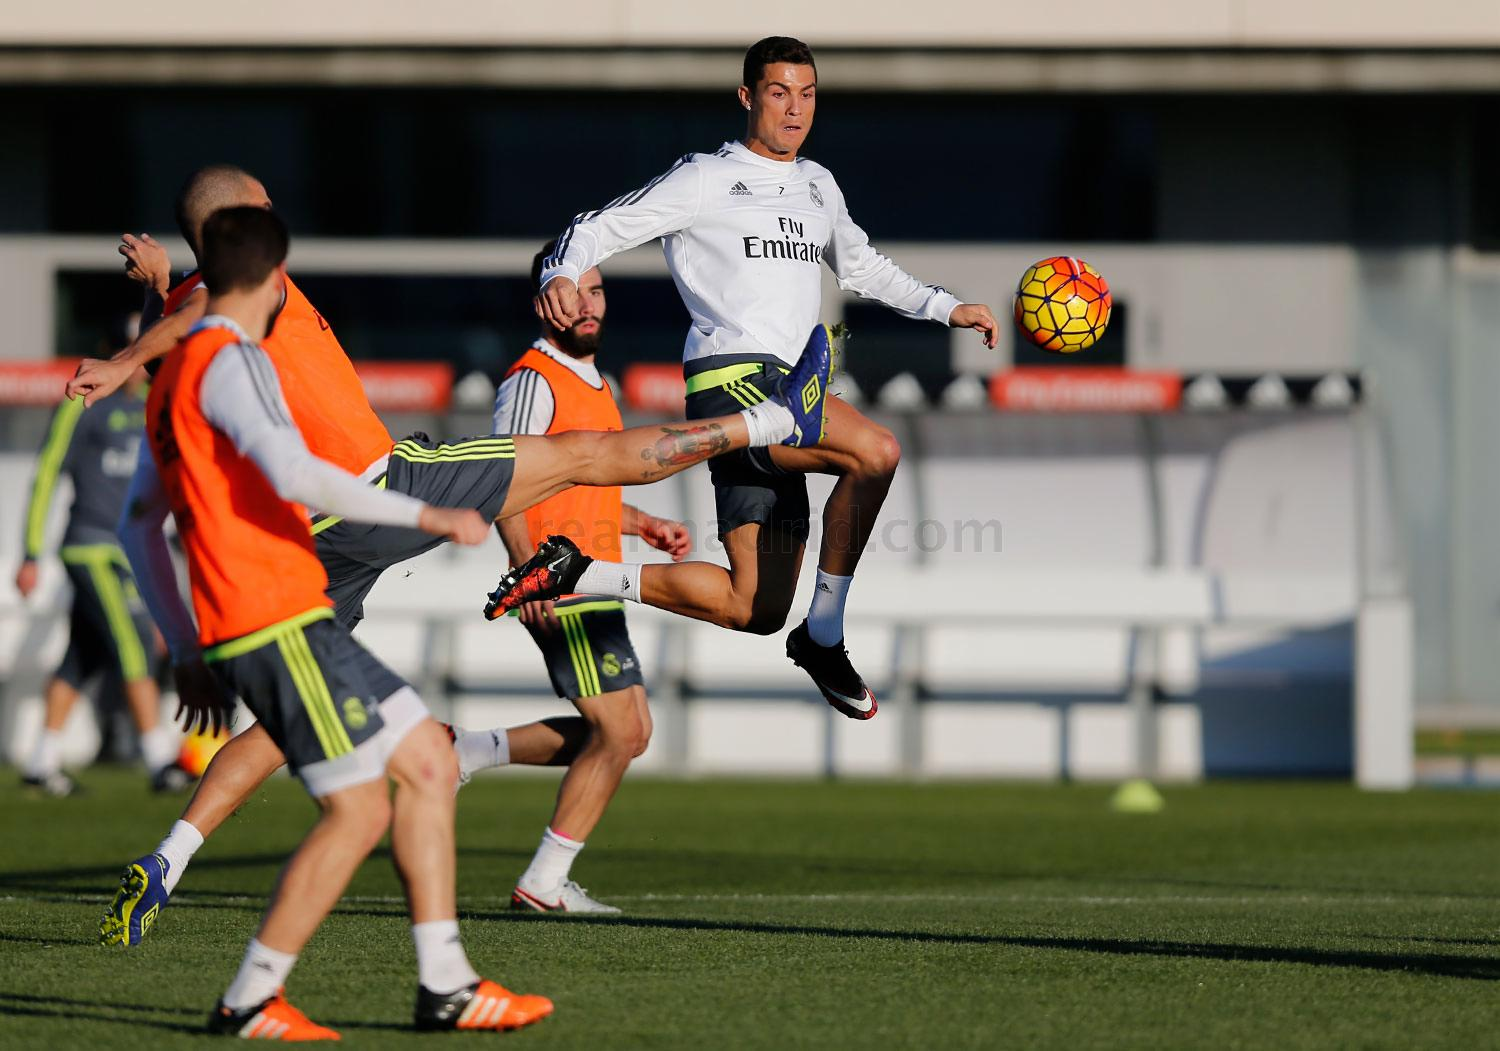 Real Madrid - Entrenamiento del Real Madrid - 28-11-2015